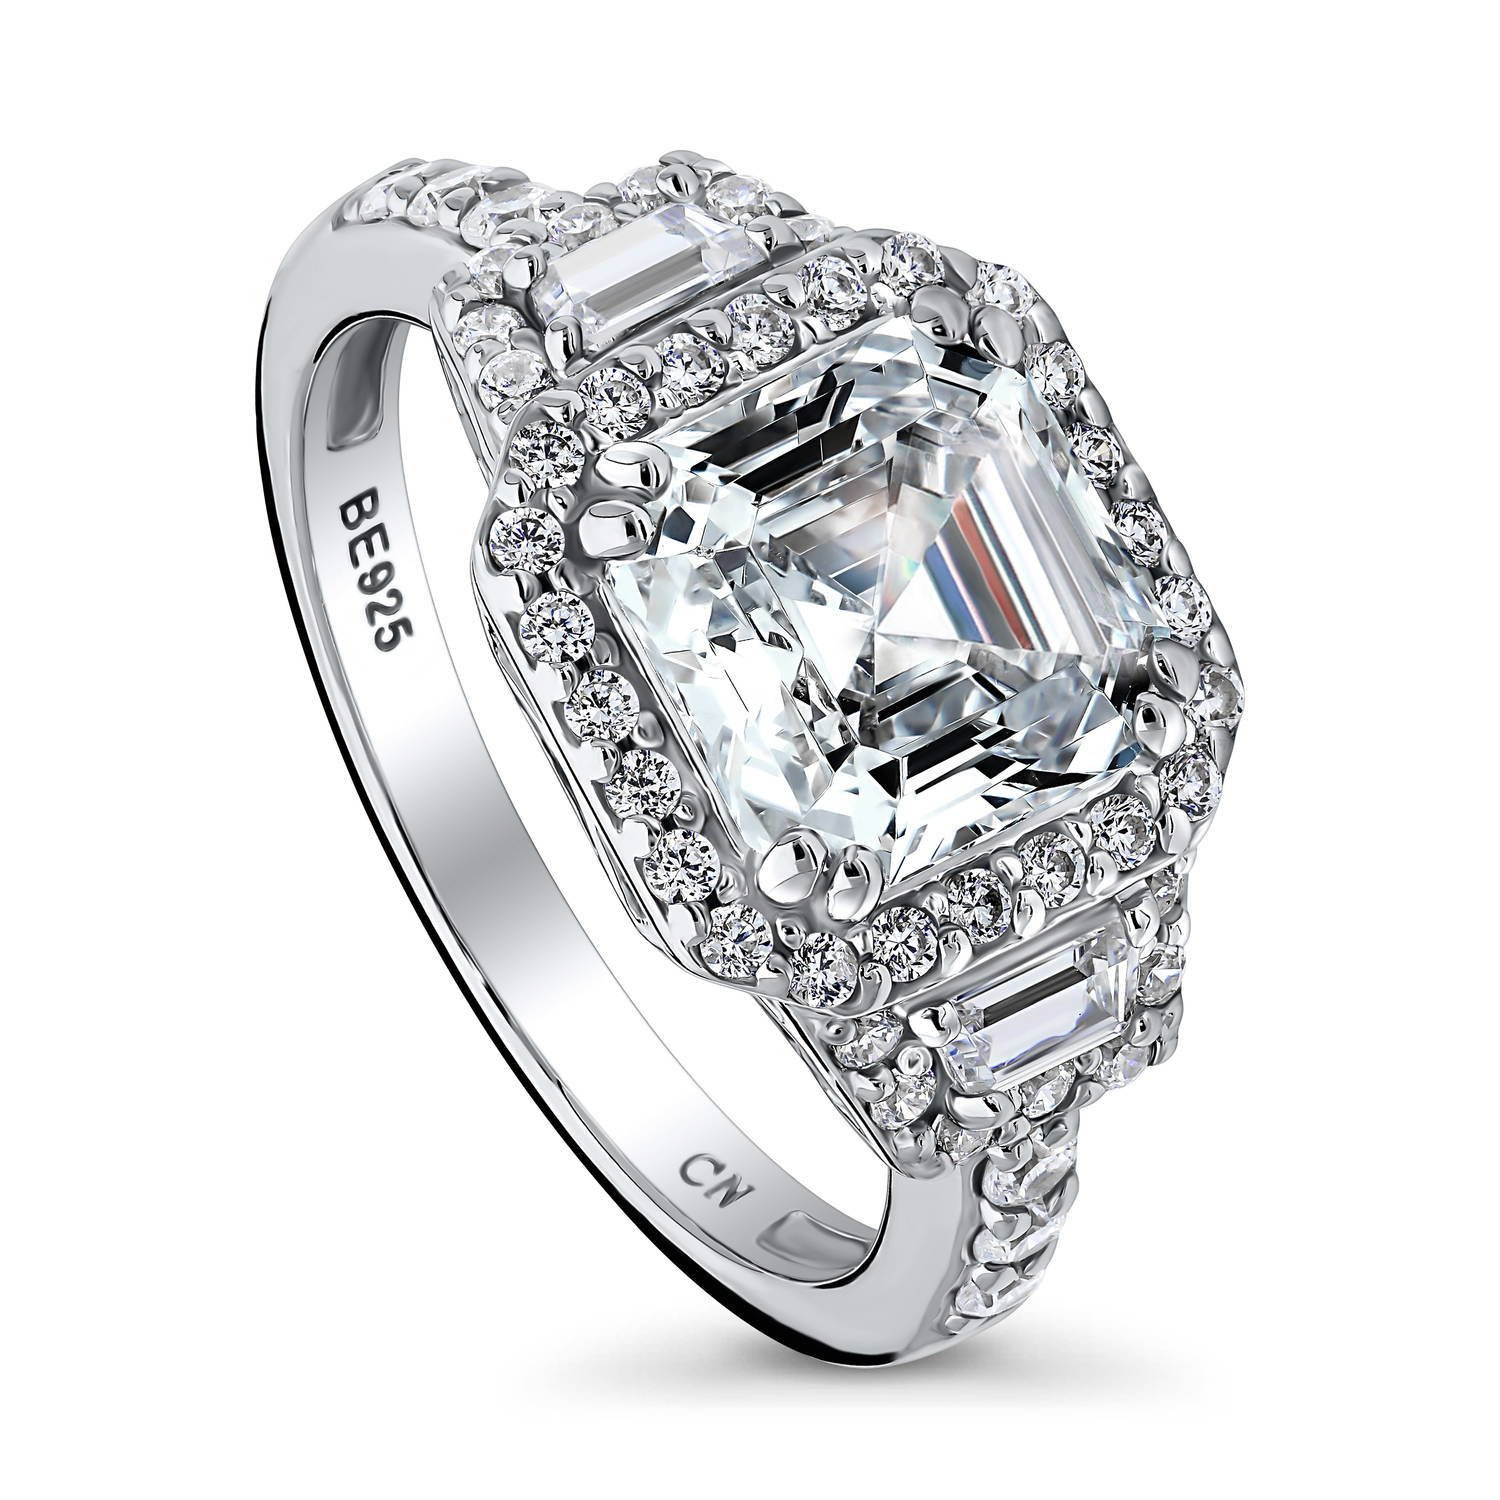 1528d991762f4 BERRICLE Rhodium Plated Sterling Silver Asscher Cut Cubic Zirconia CZ Halo  Art Deco Engagement Ring 3.75 CTW